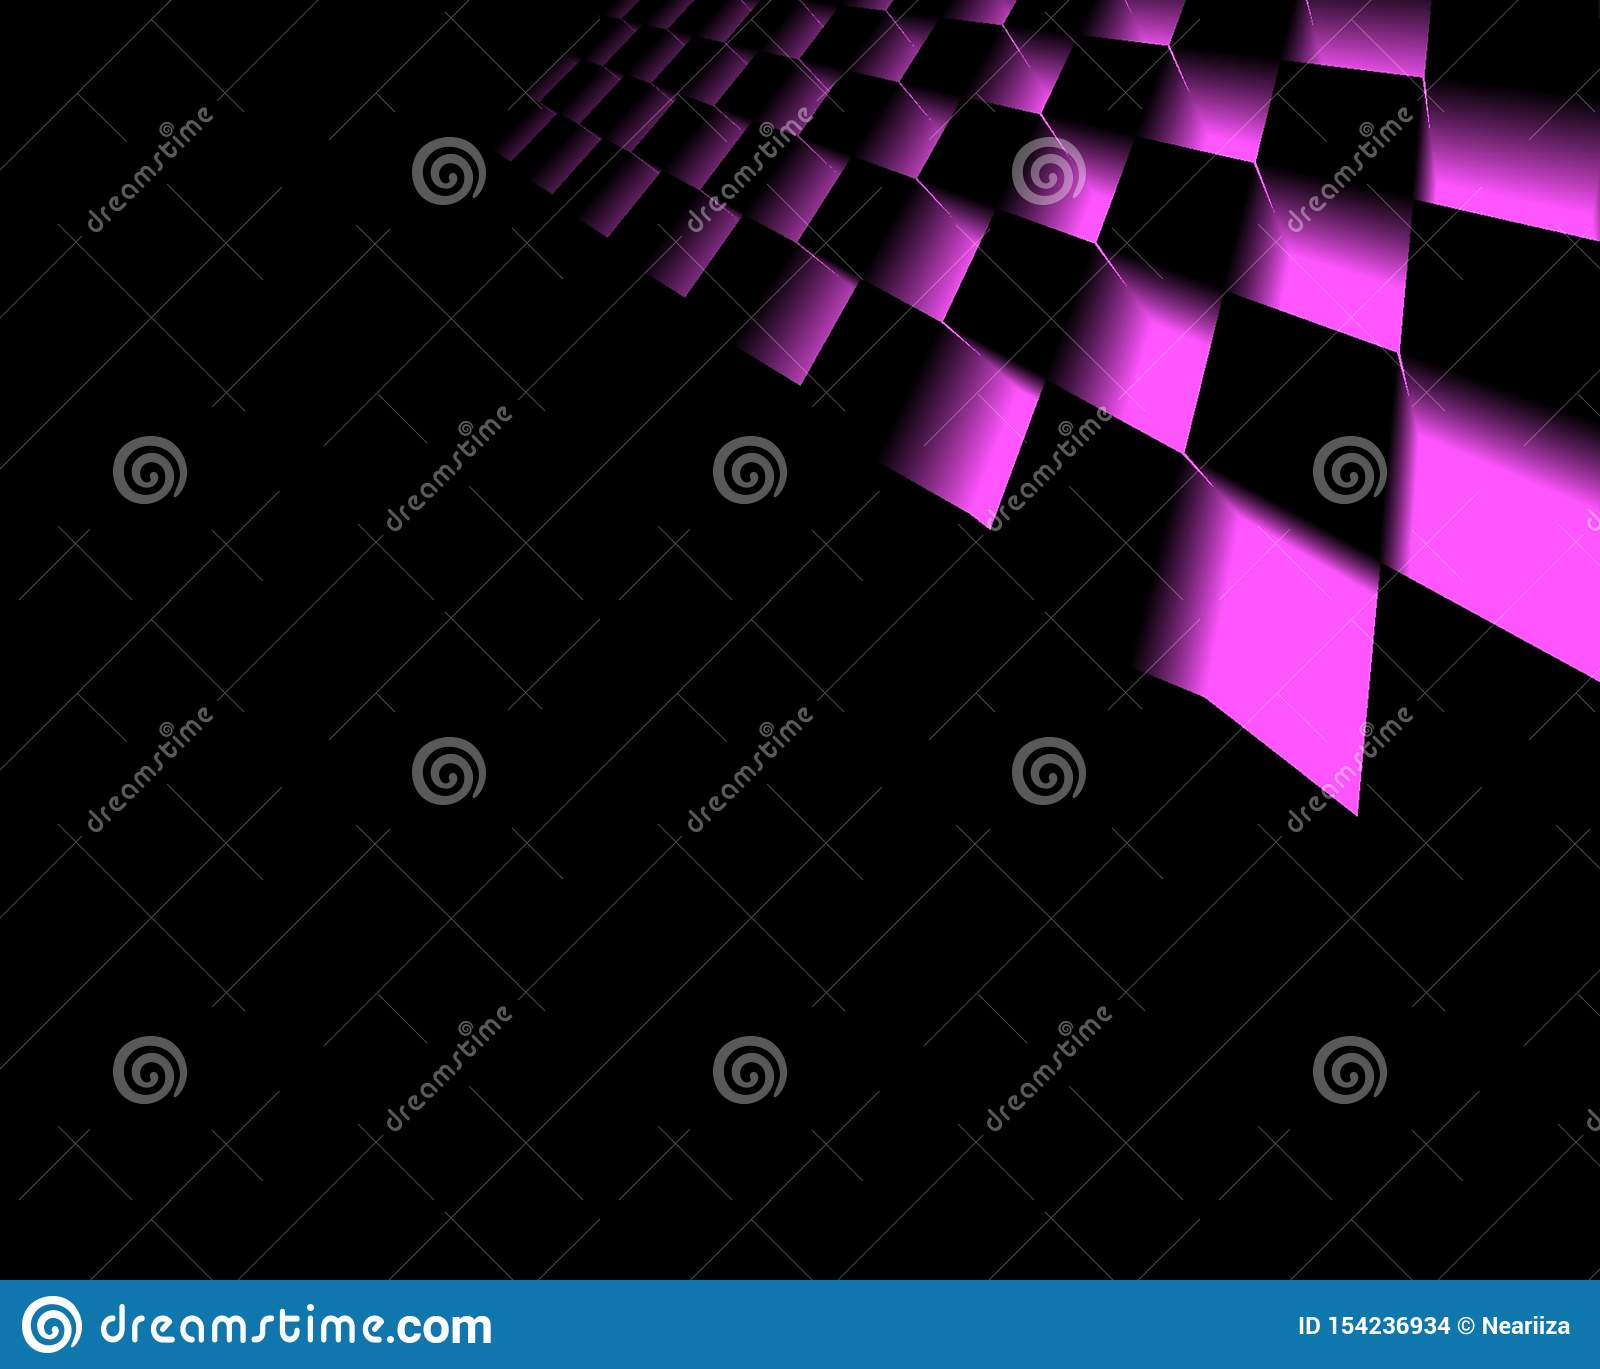 Black And Pink Abstract Background For Desktop Wallpaper Or